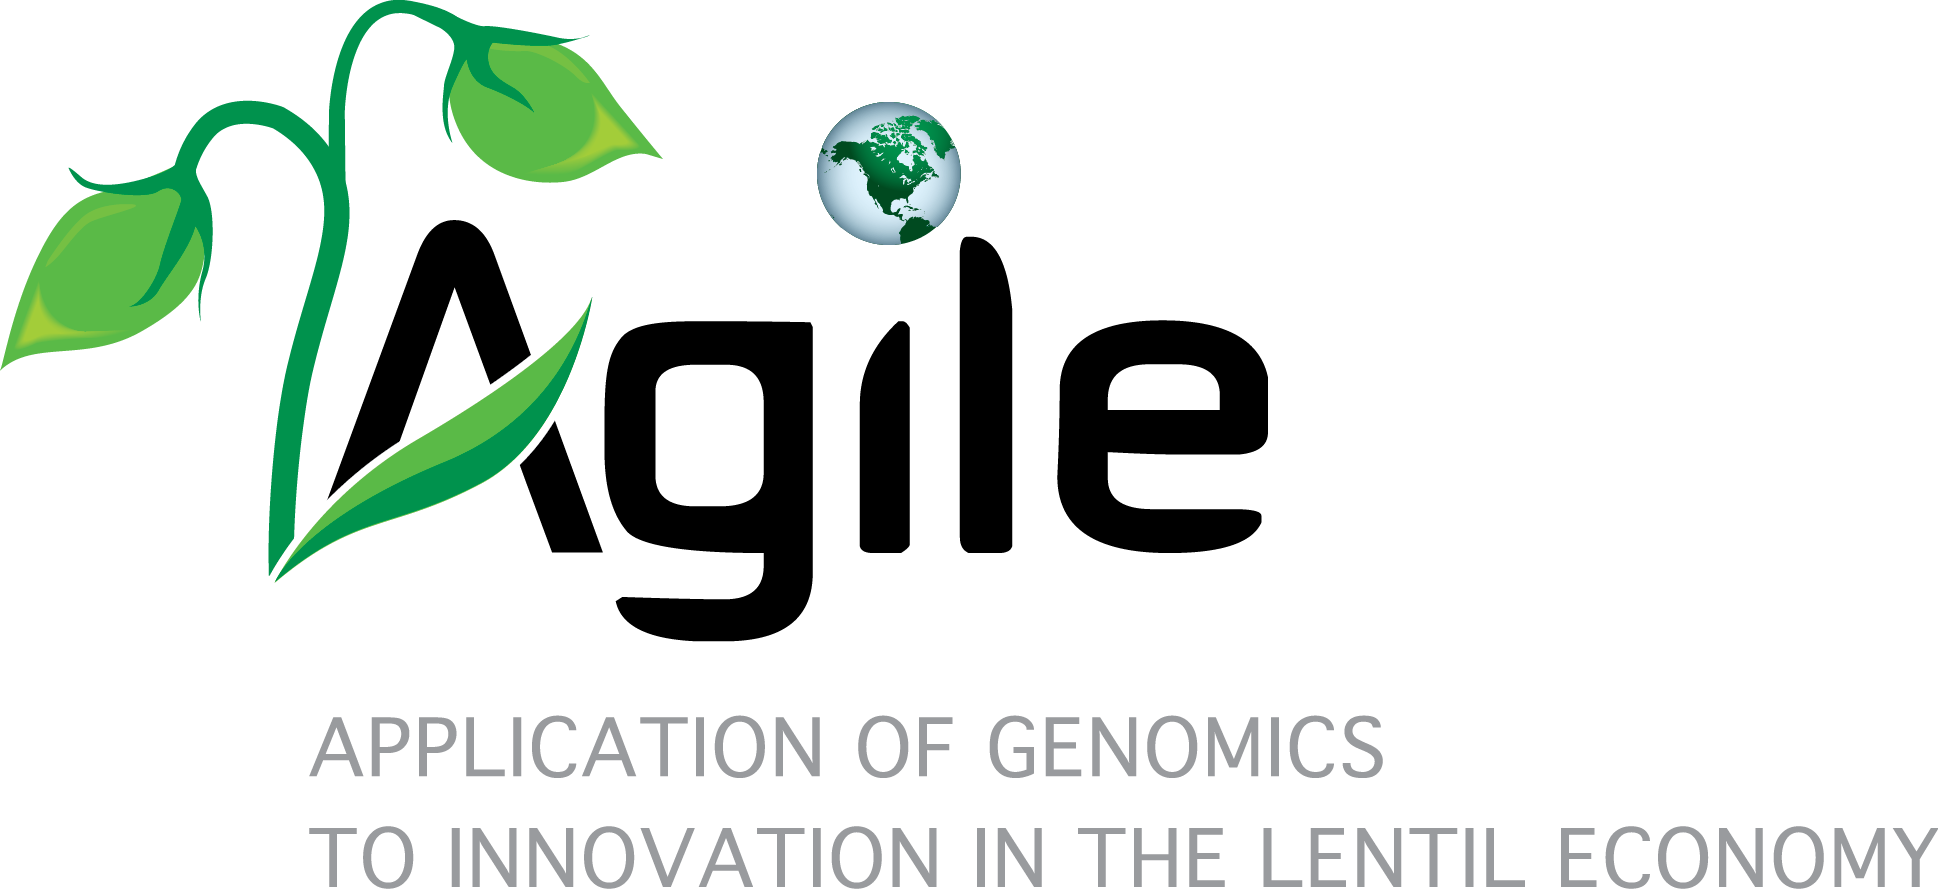 AGILE Project Logo